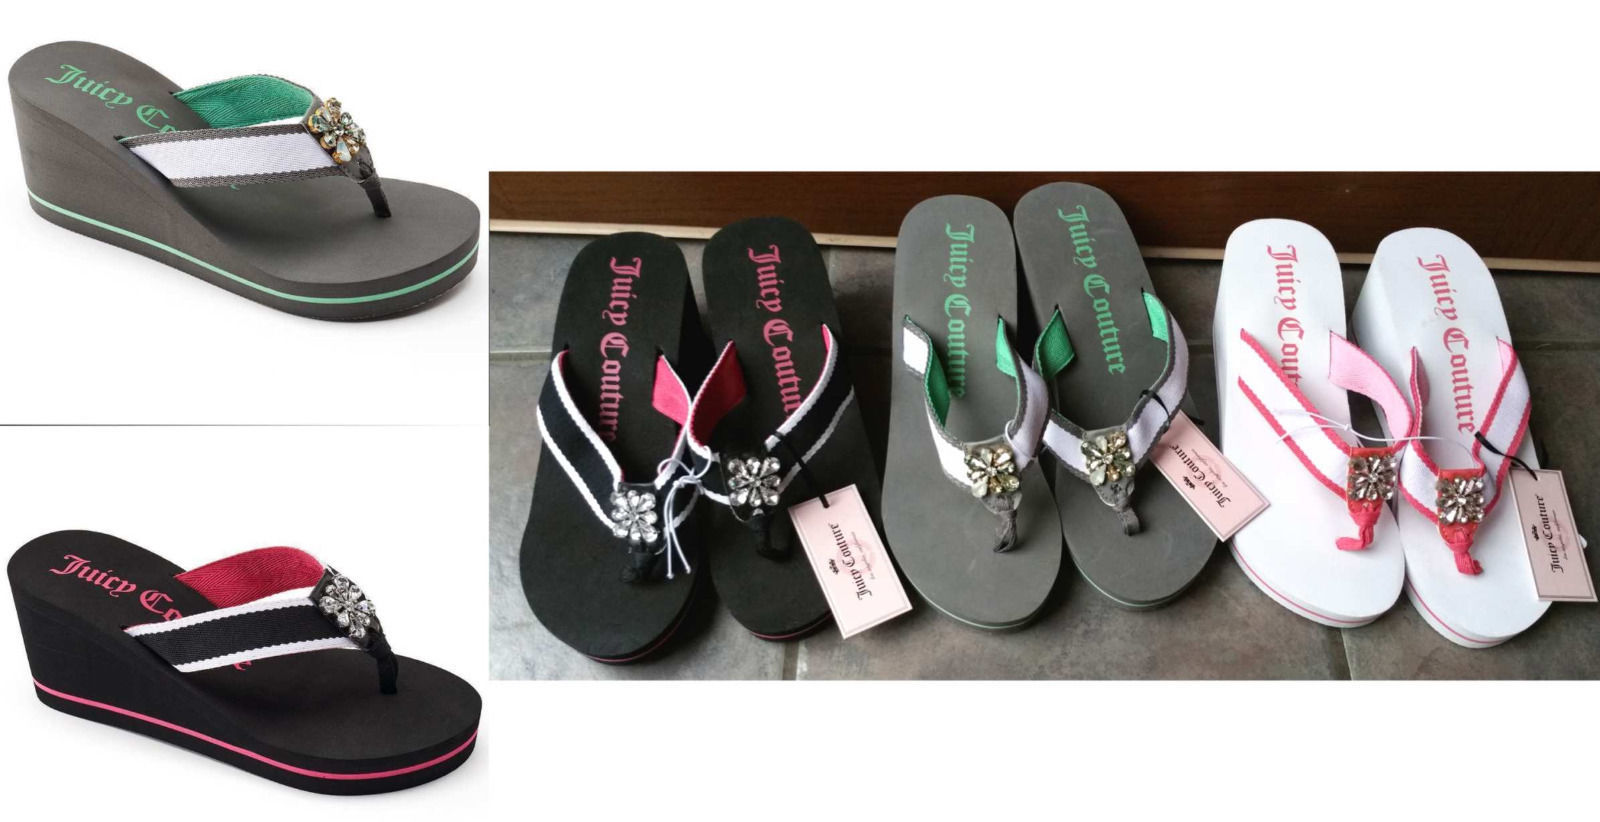 Juicy Couture Thong Wedge Flip Flop Sandals Rhinestone Beach Black Gray Pink NEW